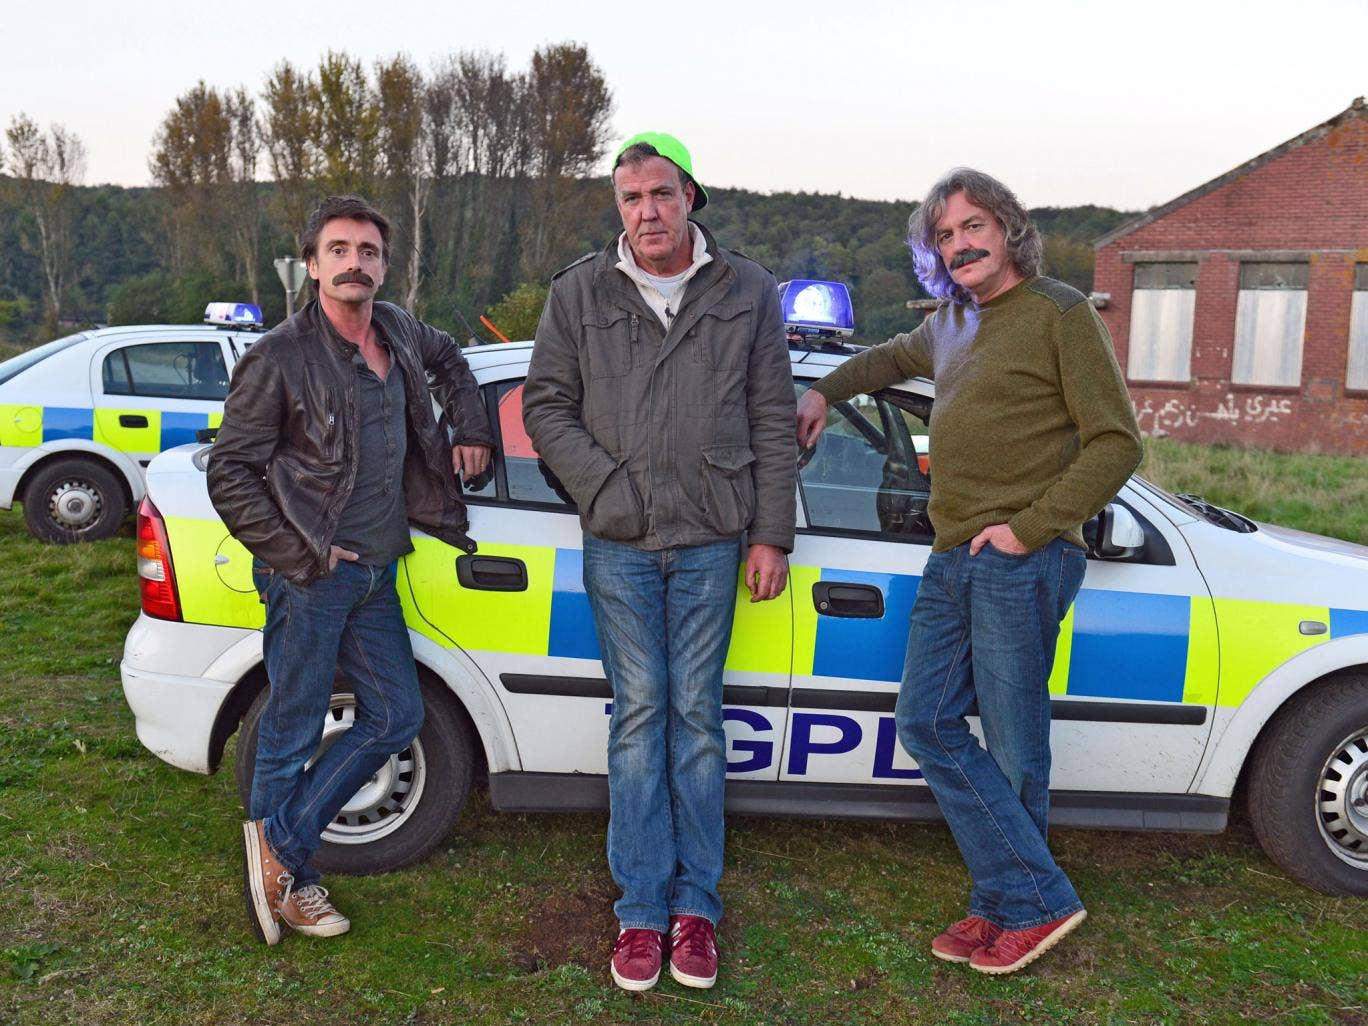 Richard Hammond, Jeremy Clarkson and James May in the first episode of Top Gear's 21st series